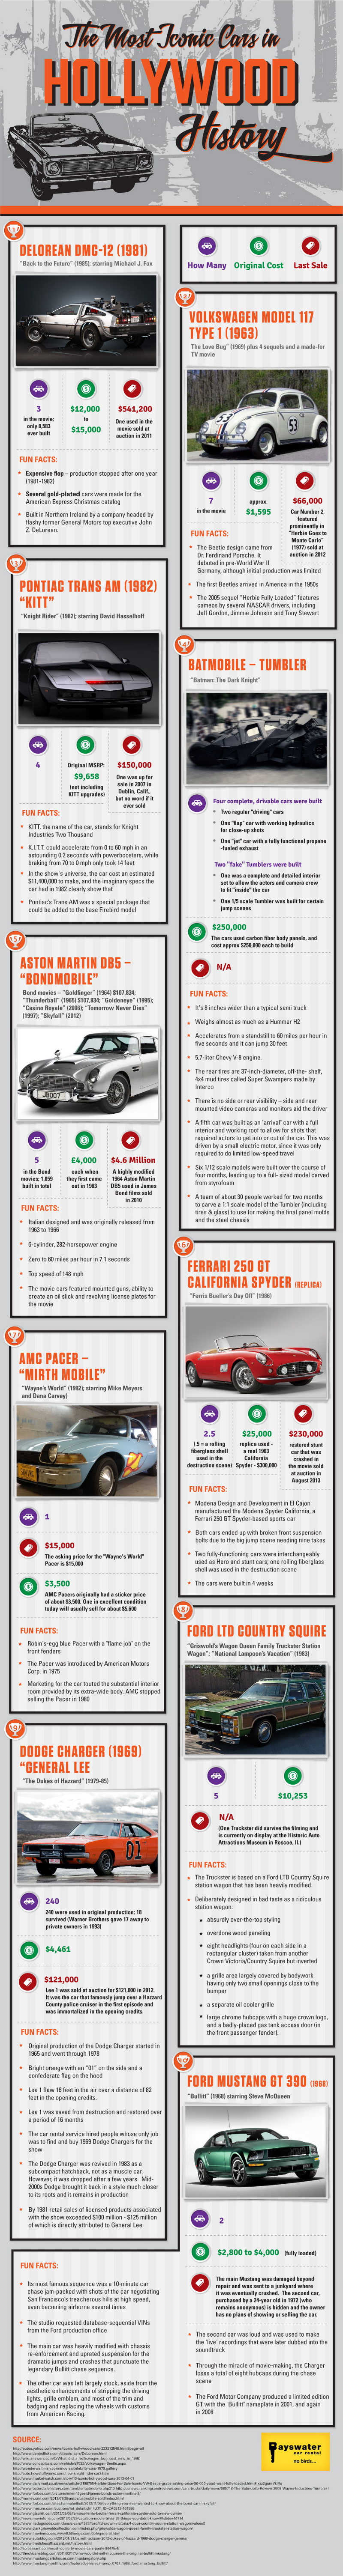 Iconic-Cars-from-Movies